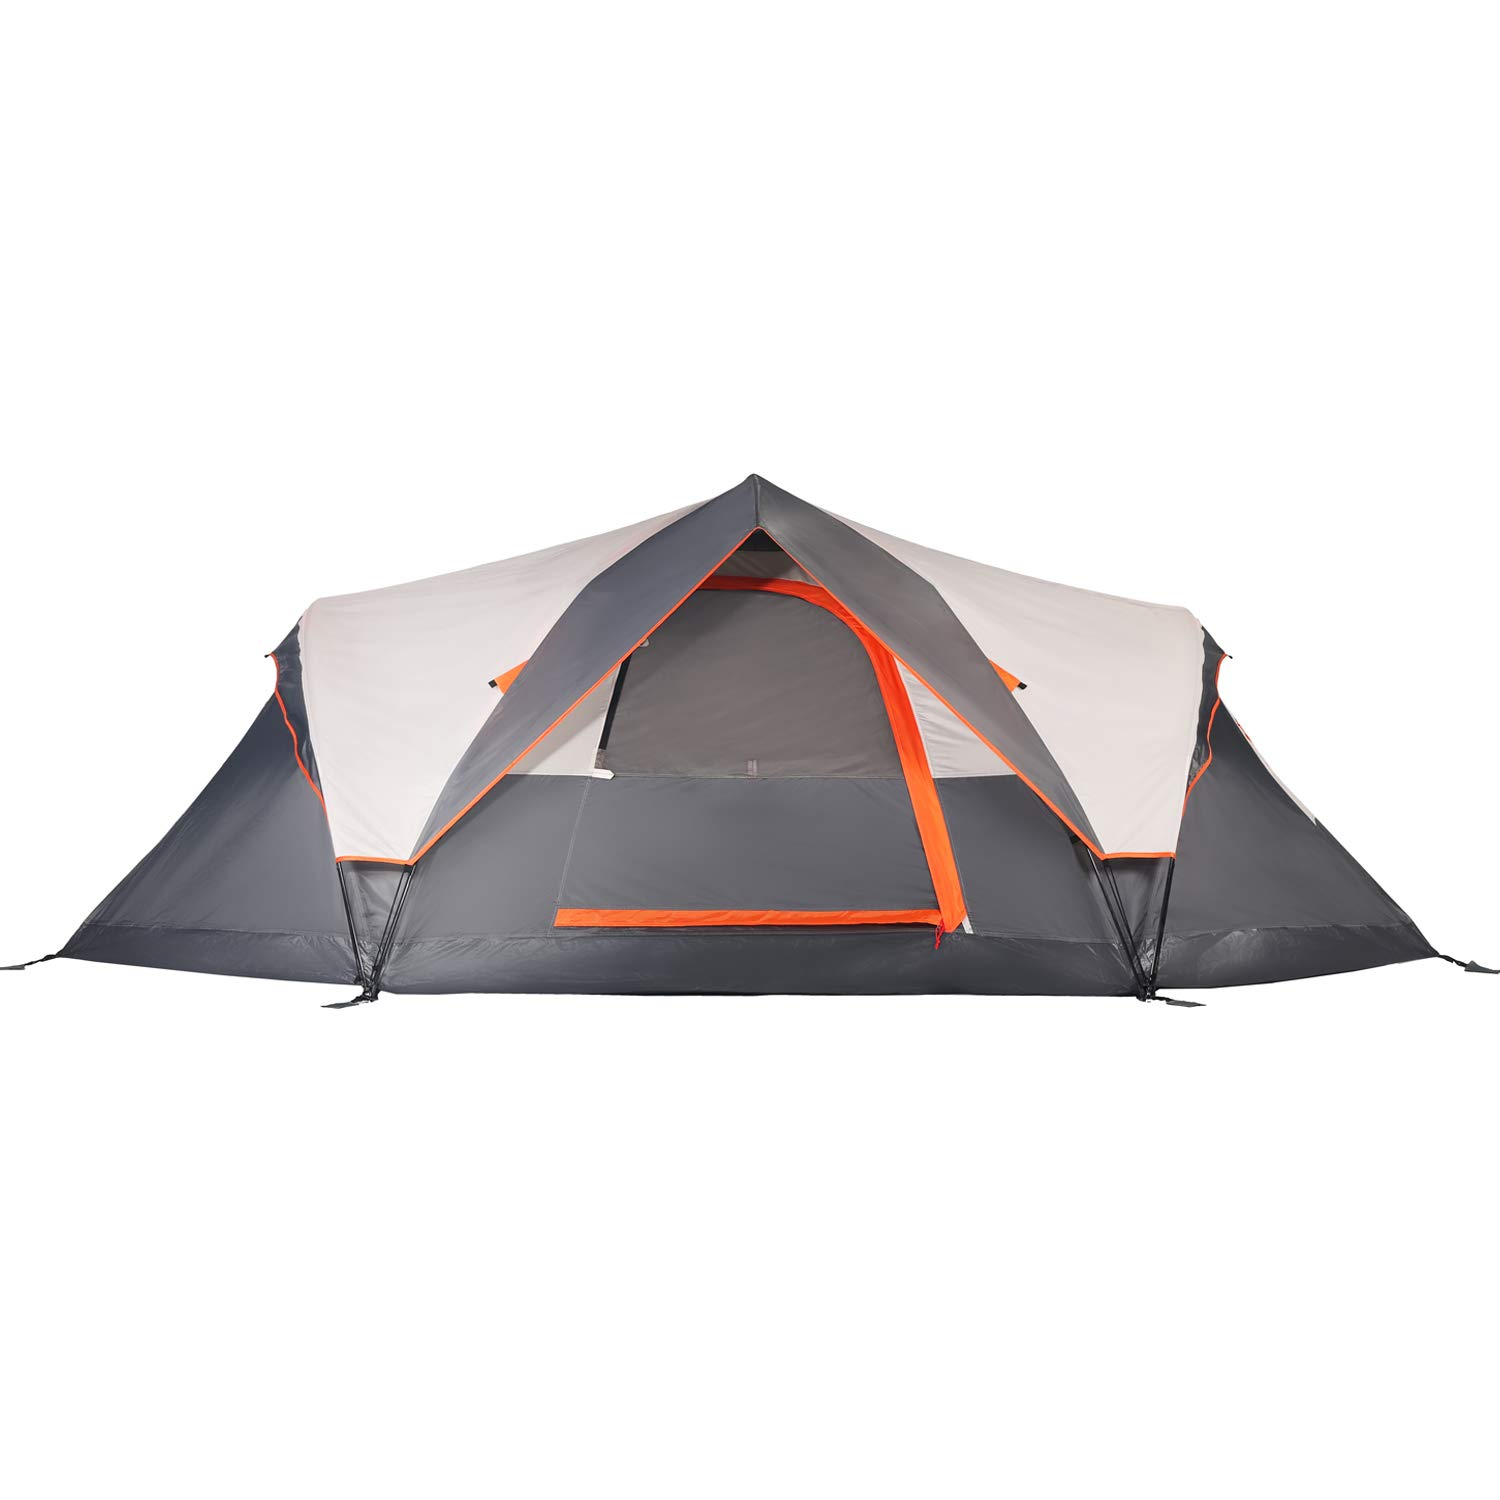 Mobihome 6-Person Tent Family Camping Quick Setup, Instant Extended Dome Tents Outdoor, with Water-Resistant Rainfly and Mesh Roofs & Door & Windows - 13.5' x 7' by Mobihome